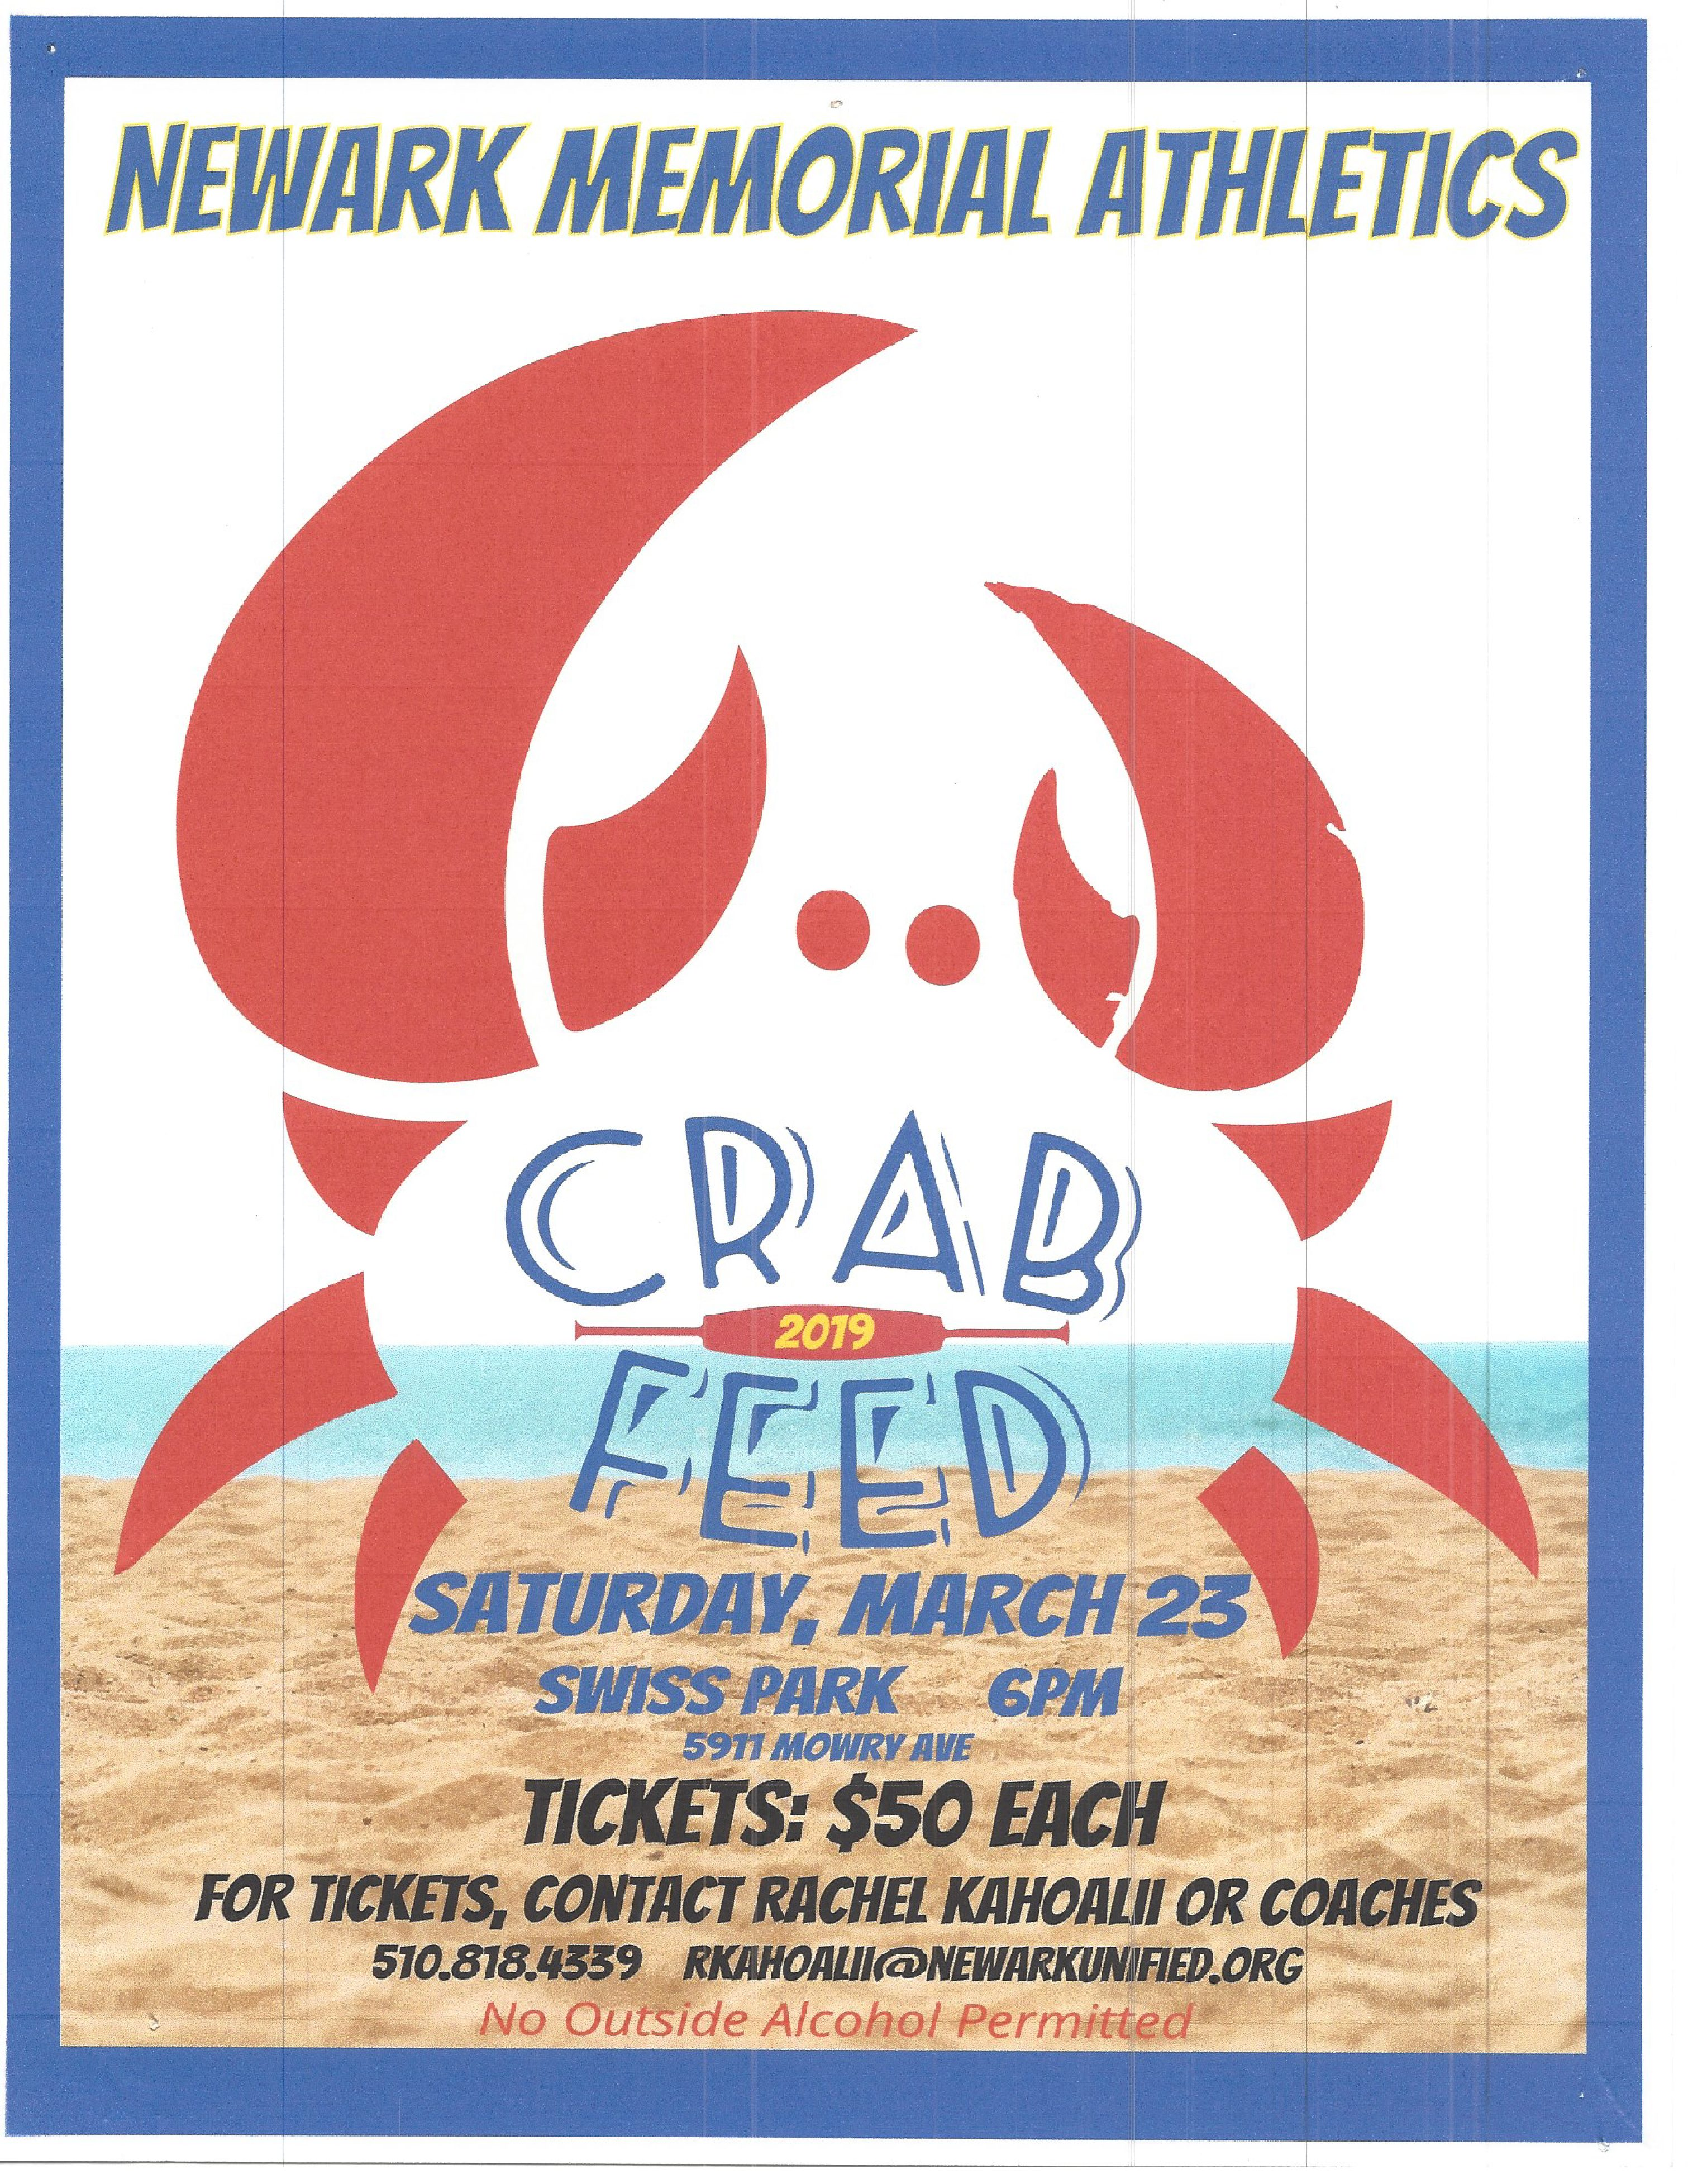 COUGAR CRAB FEED